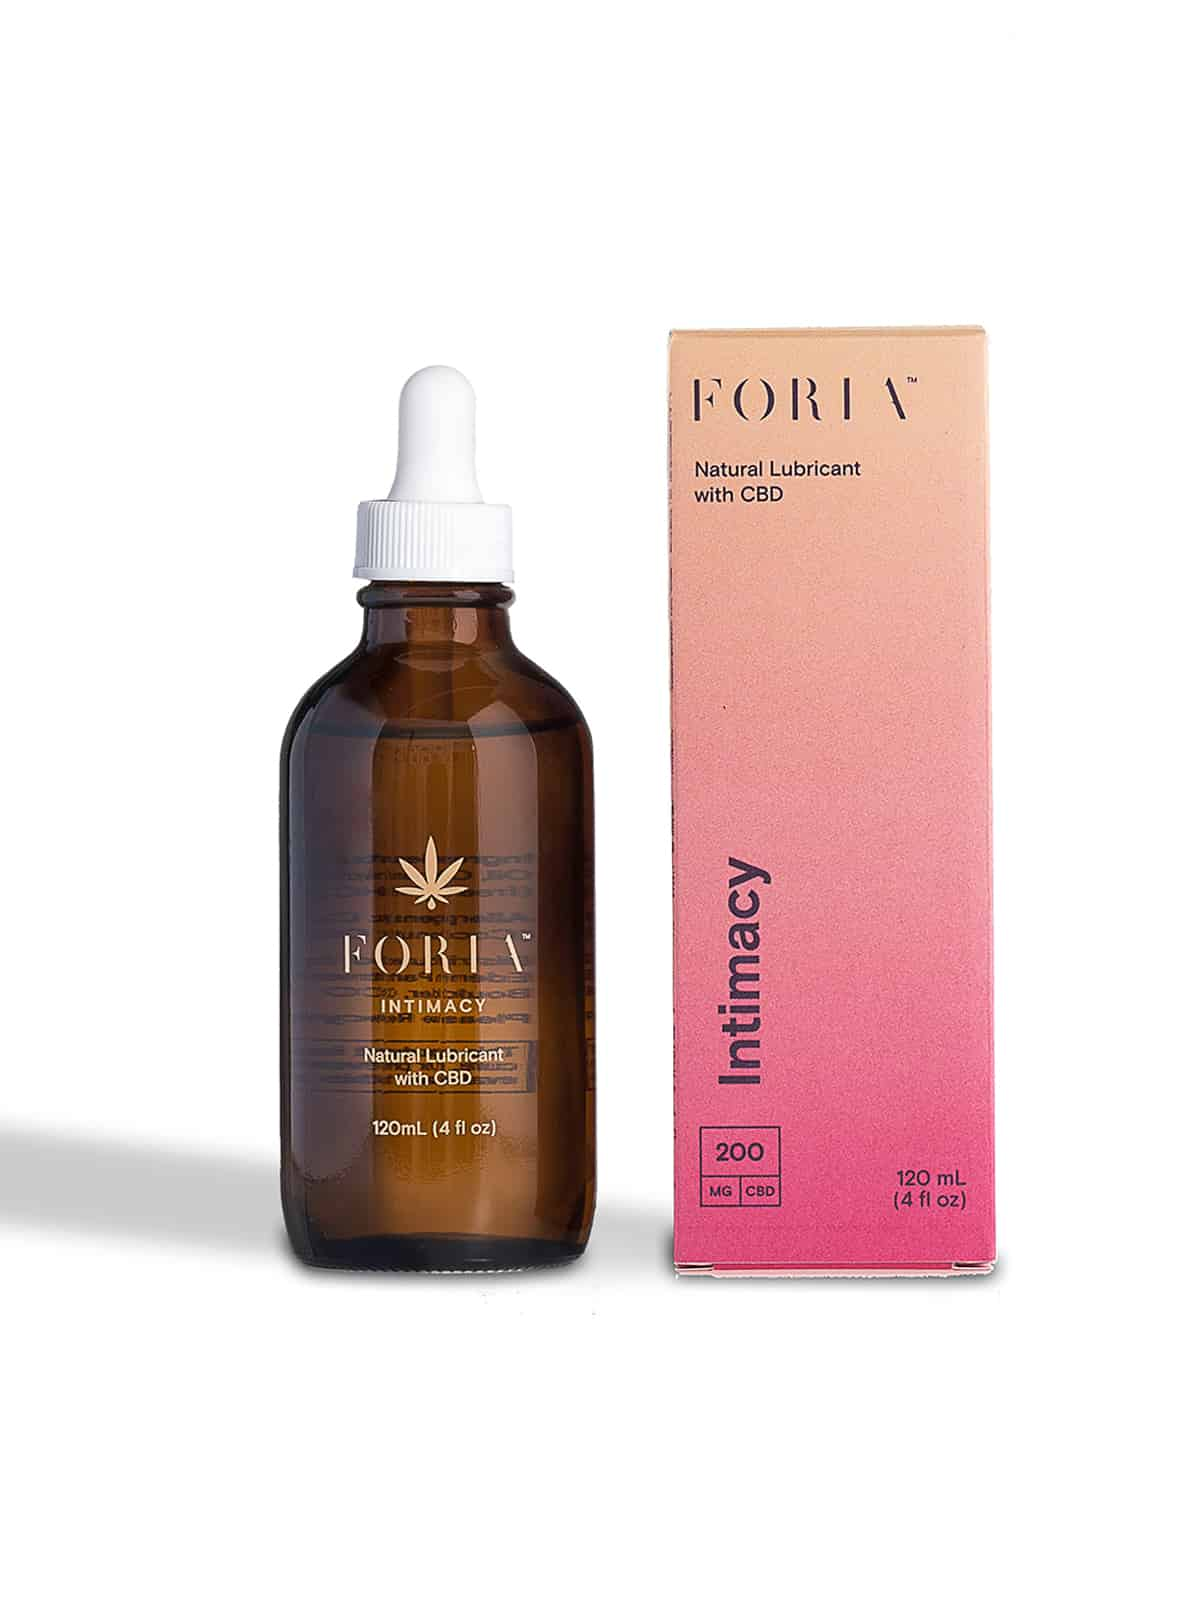 Natural and Organic Lubricant with CBD